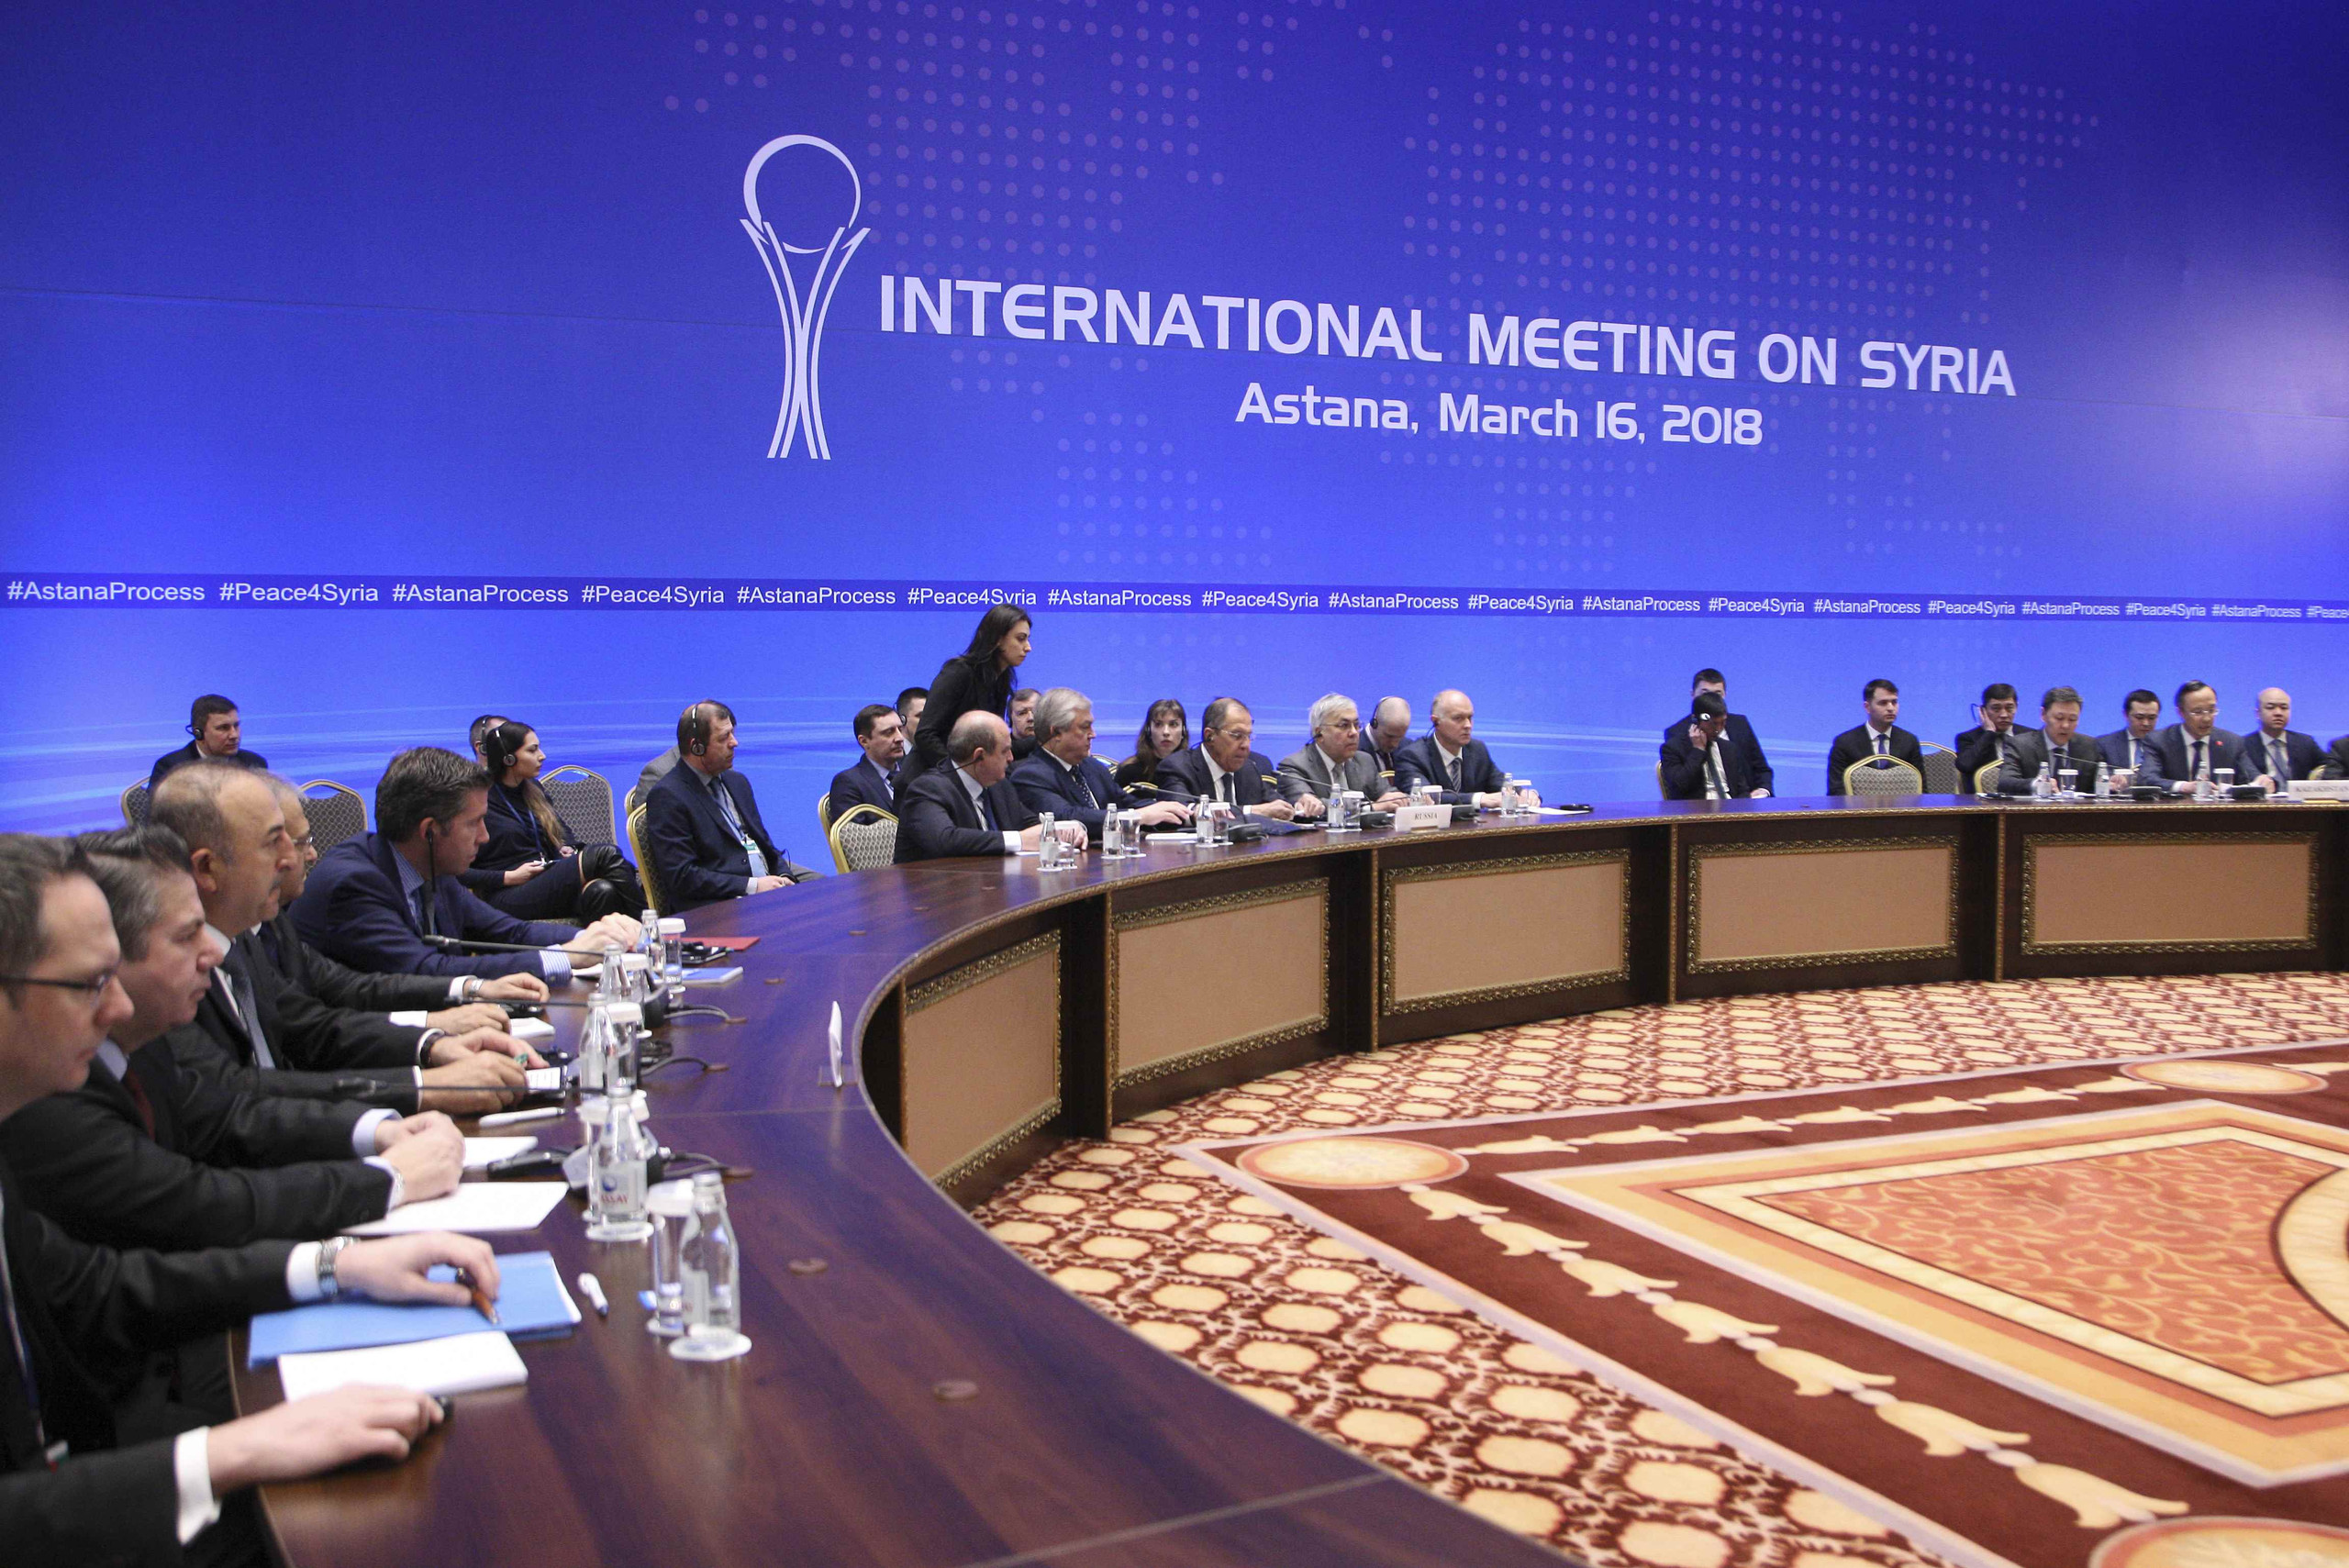 Members of the delegations take part in the international meeting on Syria in Astana, Kazakhstan March 16, 2018. REUTERS/Mukhtar Kholdorbekov